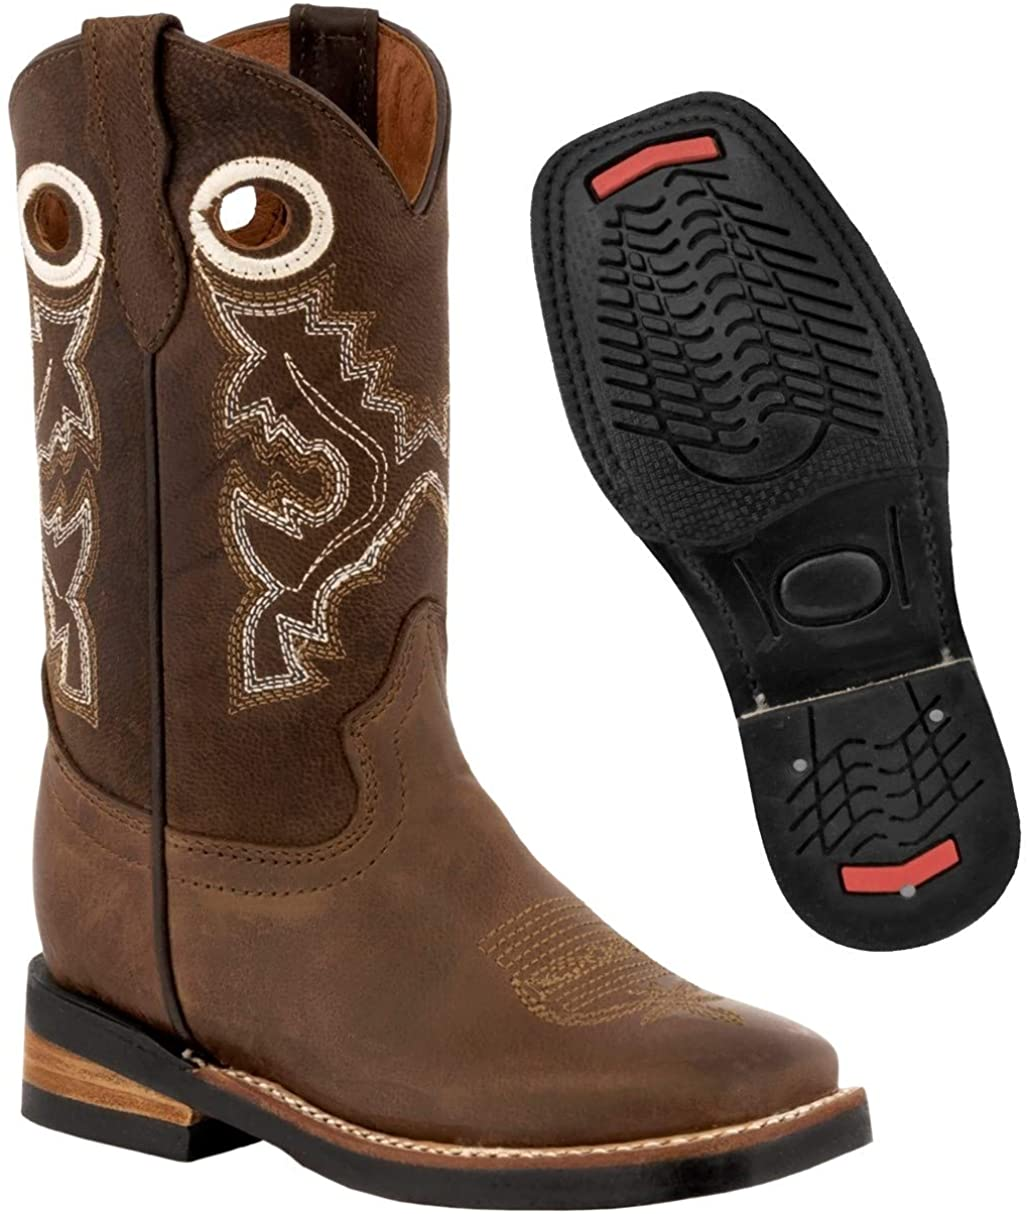 Kids Light Brown Western Cowboy Boots Pull On Leather Square Toe 9 Toddler